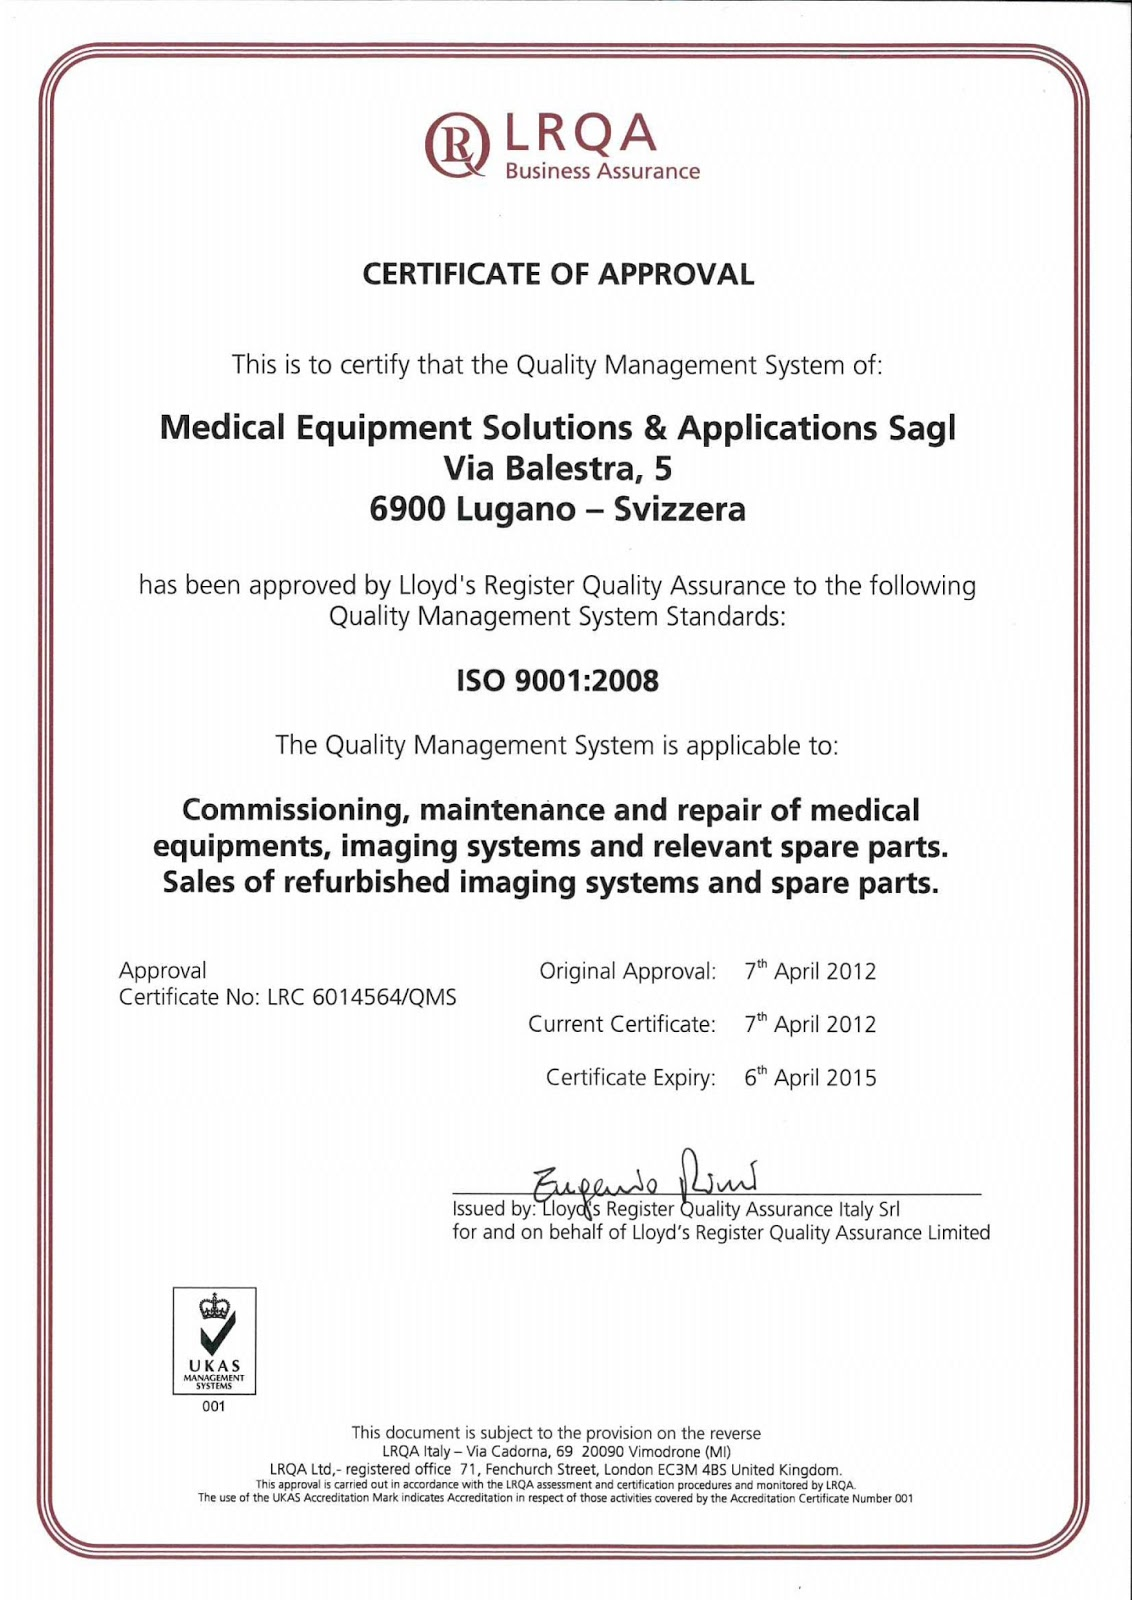 Mesa Adds Iso 9001 Certification To Existing Iso 13485 Medical